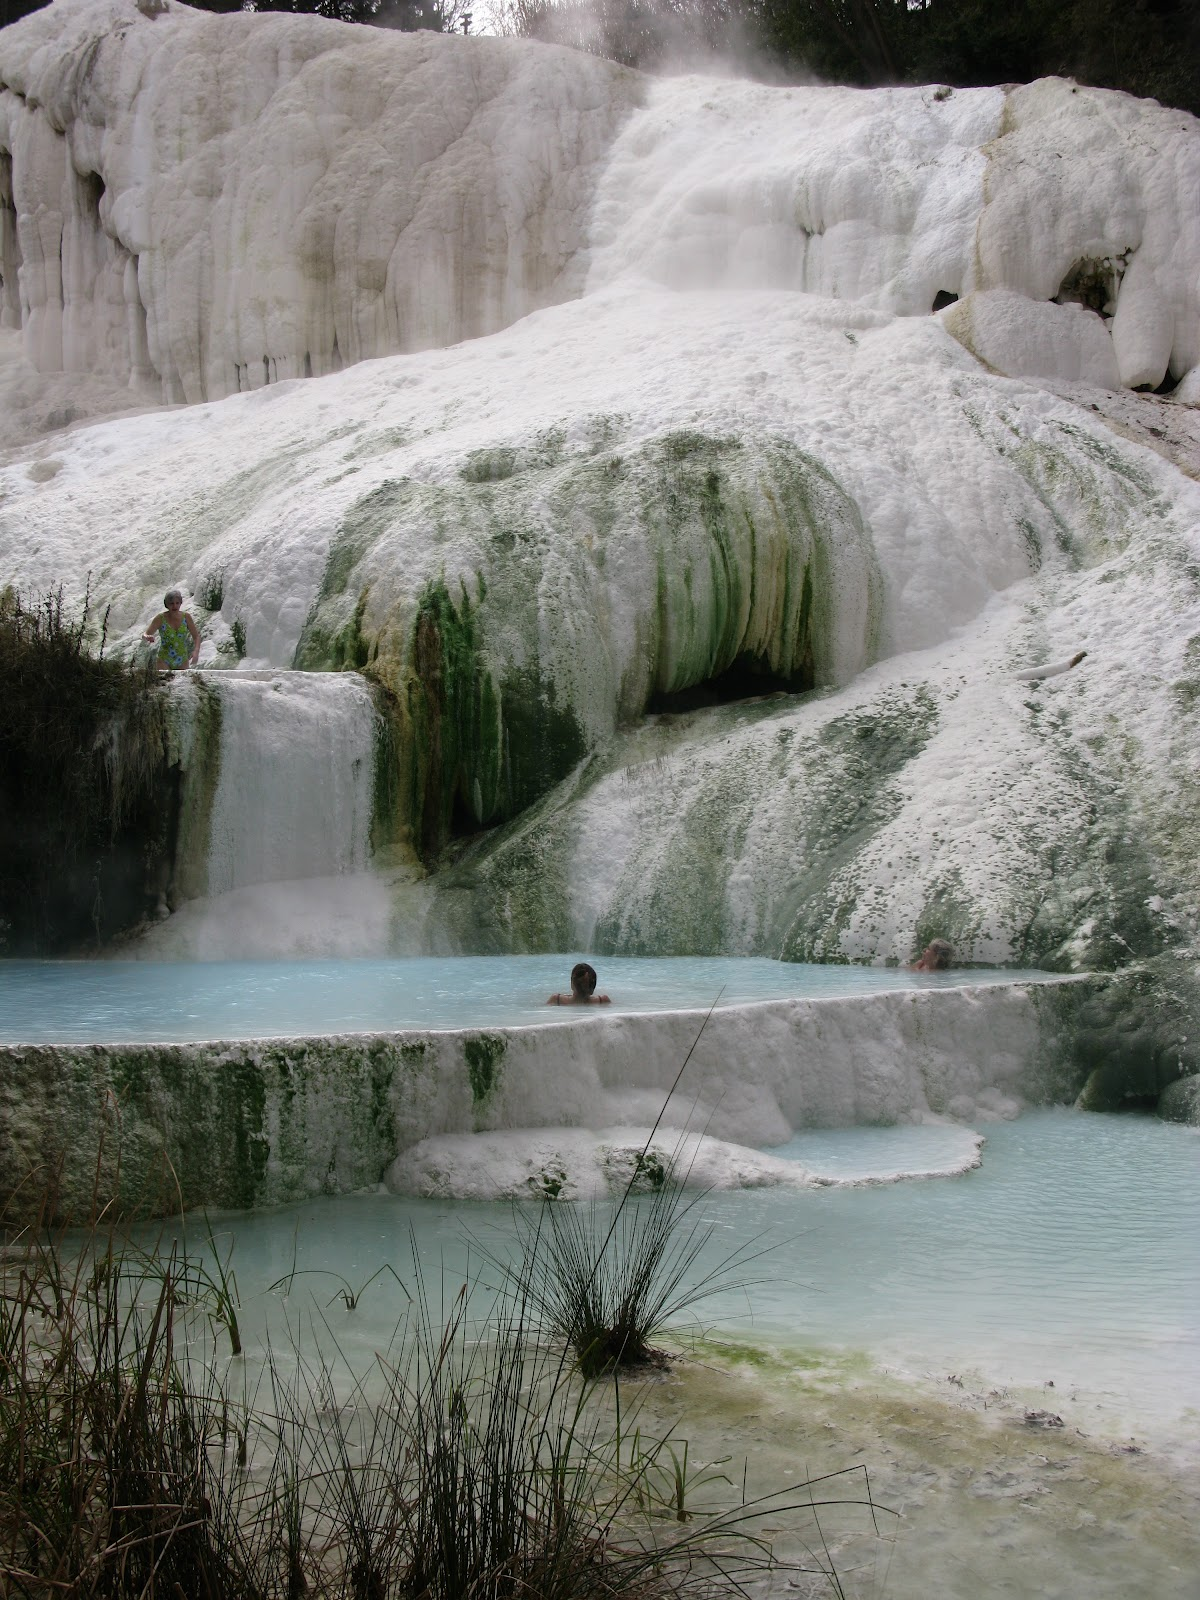 tuscany: tuscan hot springs - fosso bianco in bagni san filippo